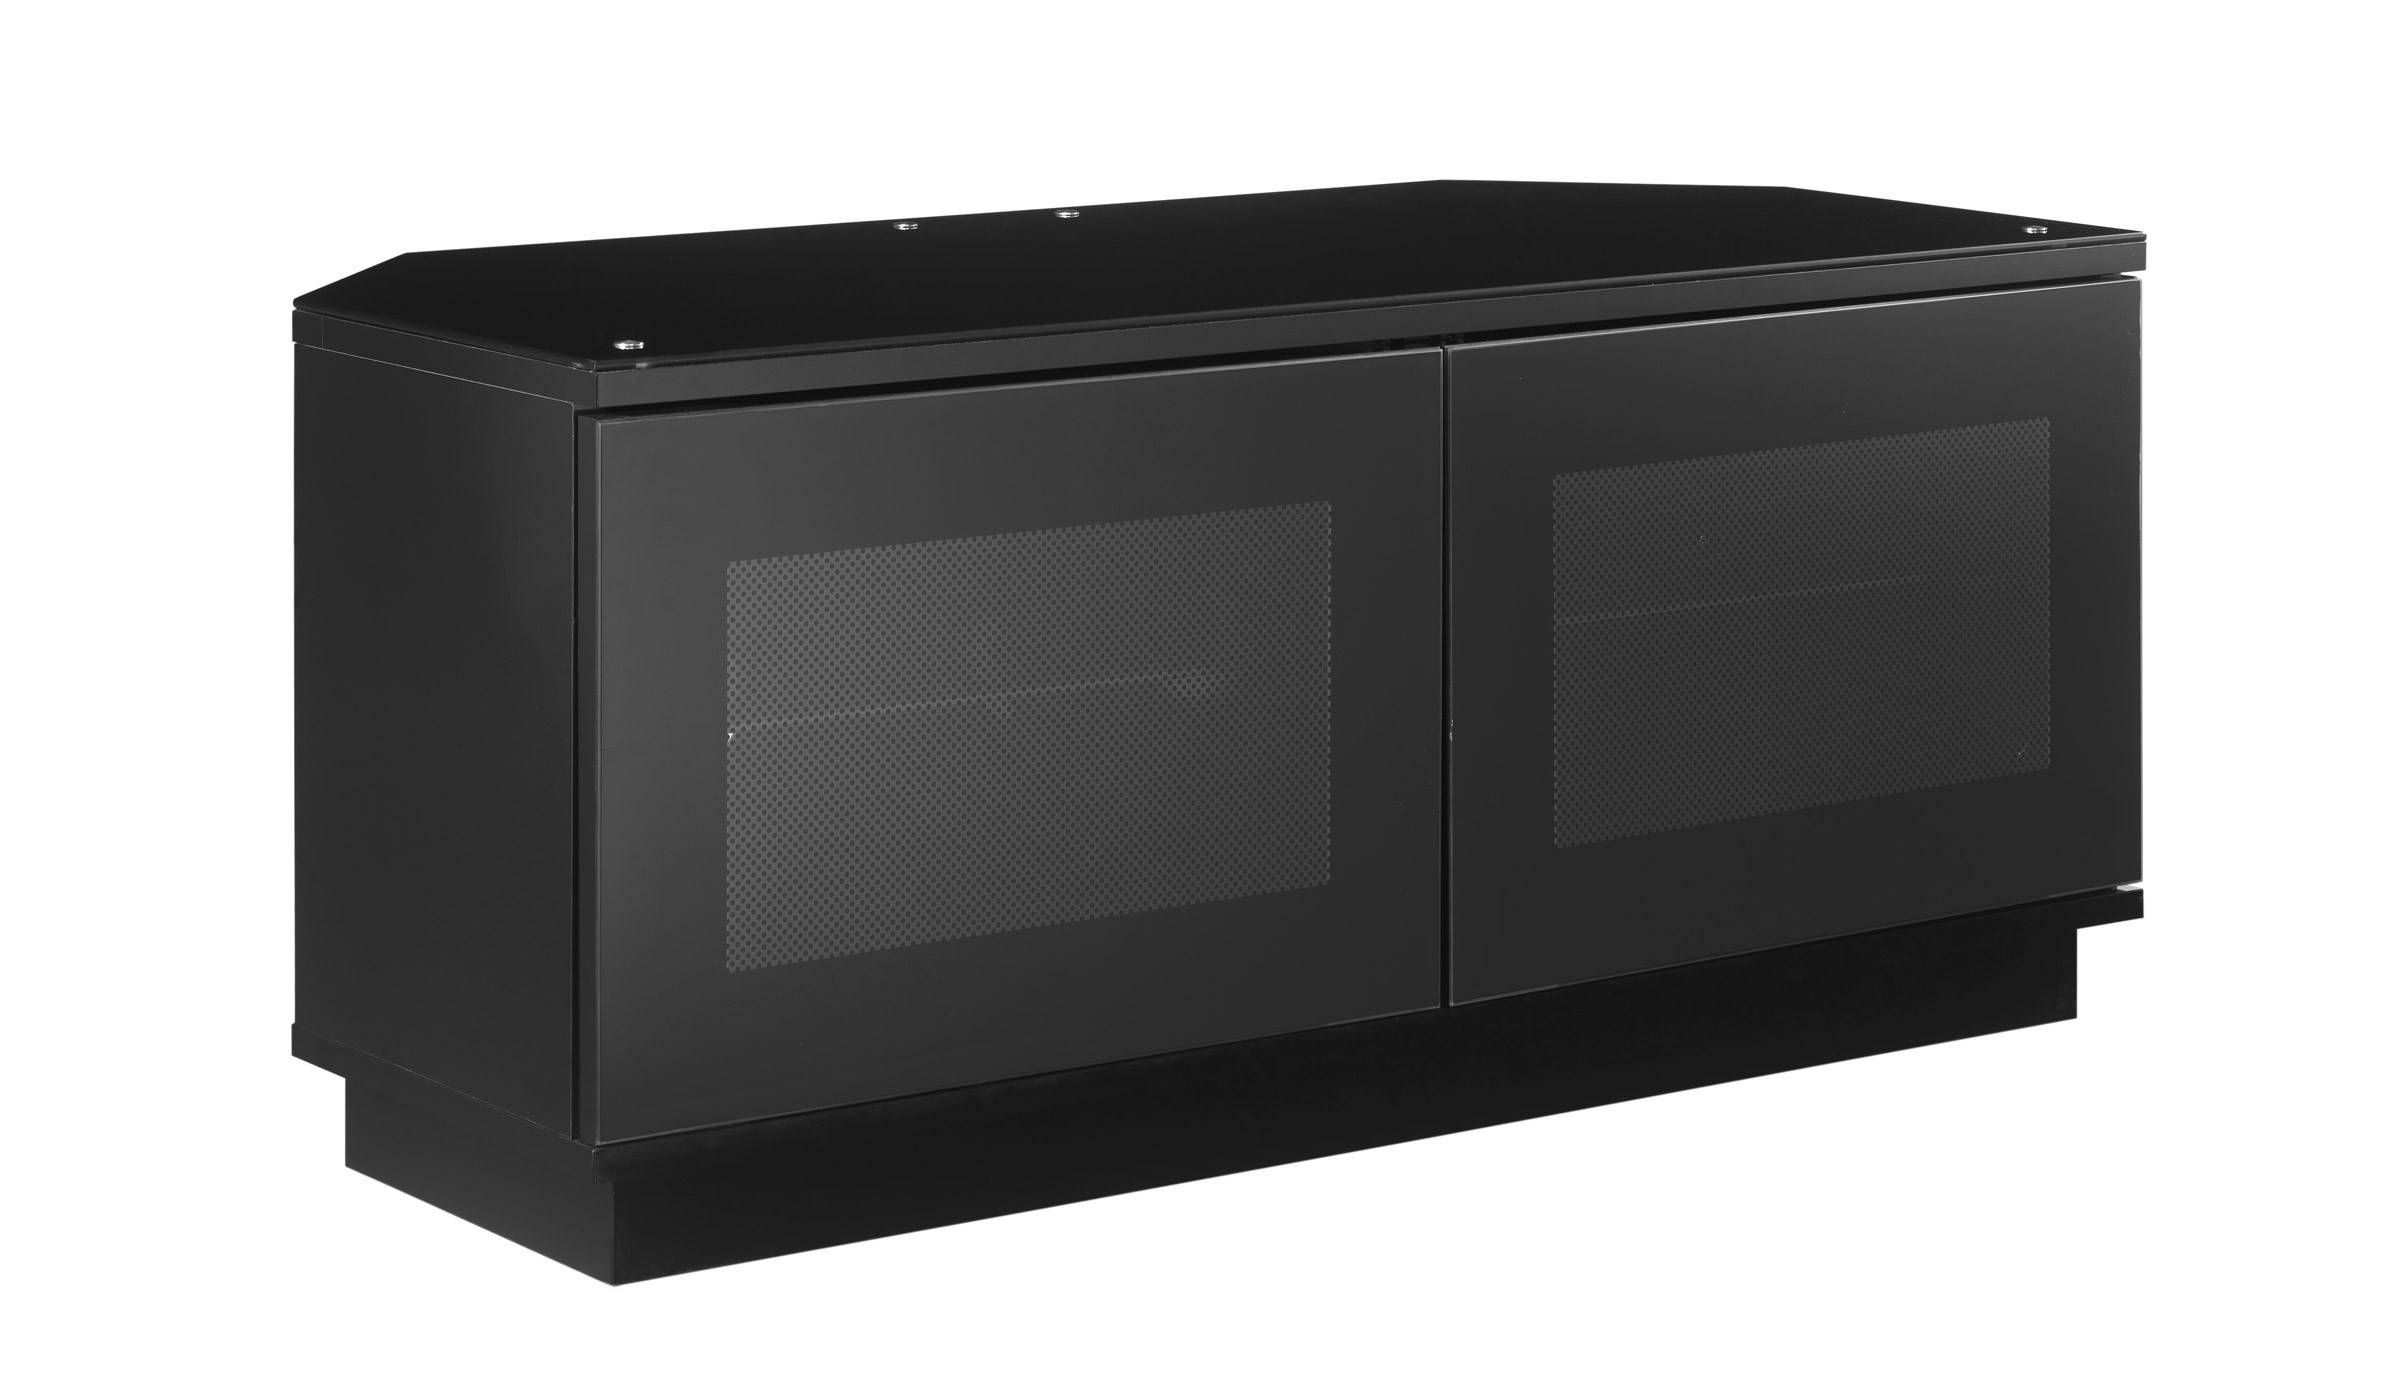 Small Black Tv Stand Cabinet With Door For Corner – Decofurnish Intended For Black Corner Tv Cabinets (View 11 of 15)